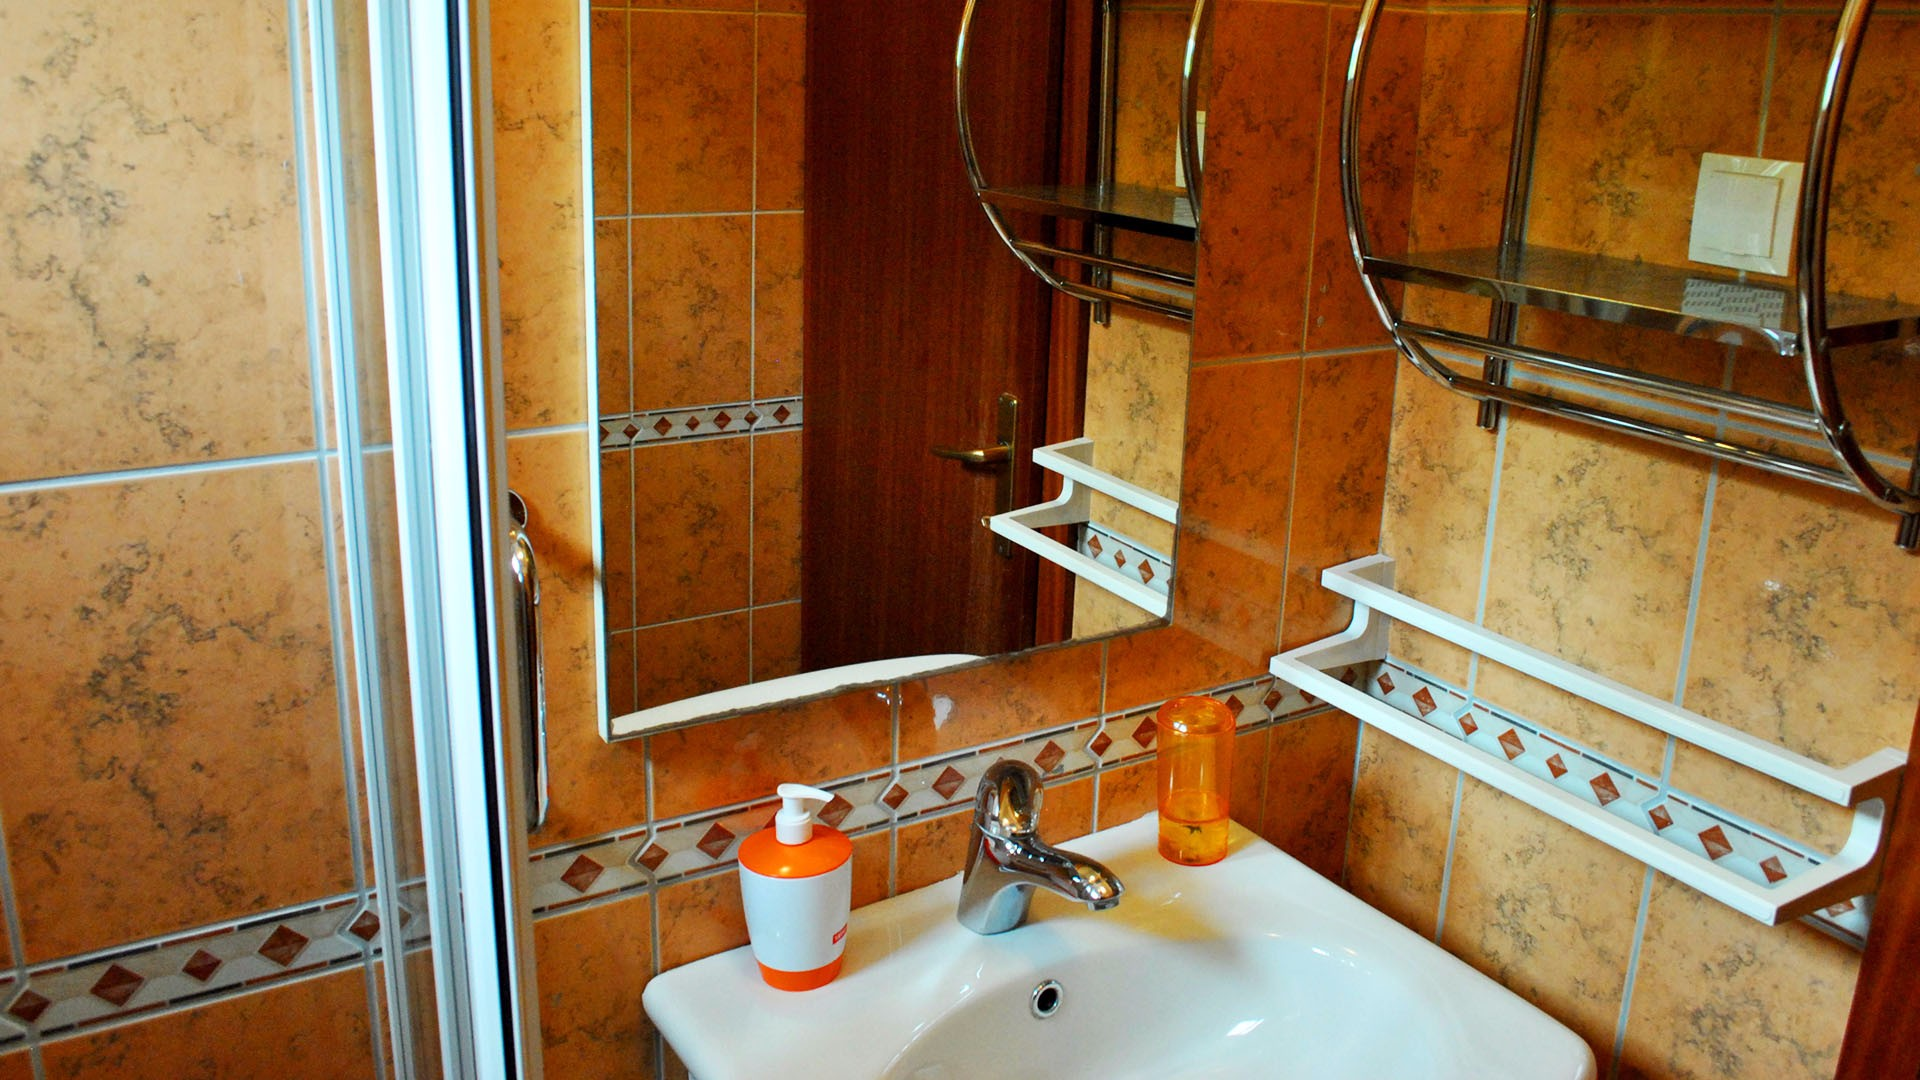 ApartmentA6 bathroom